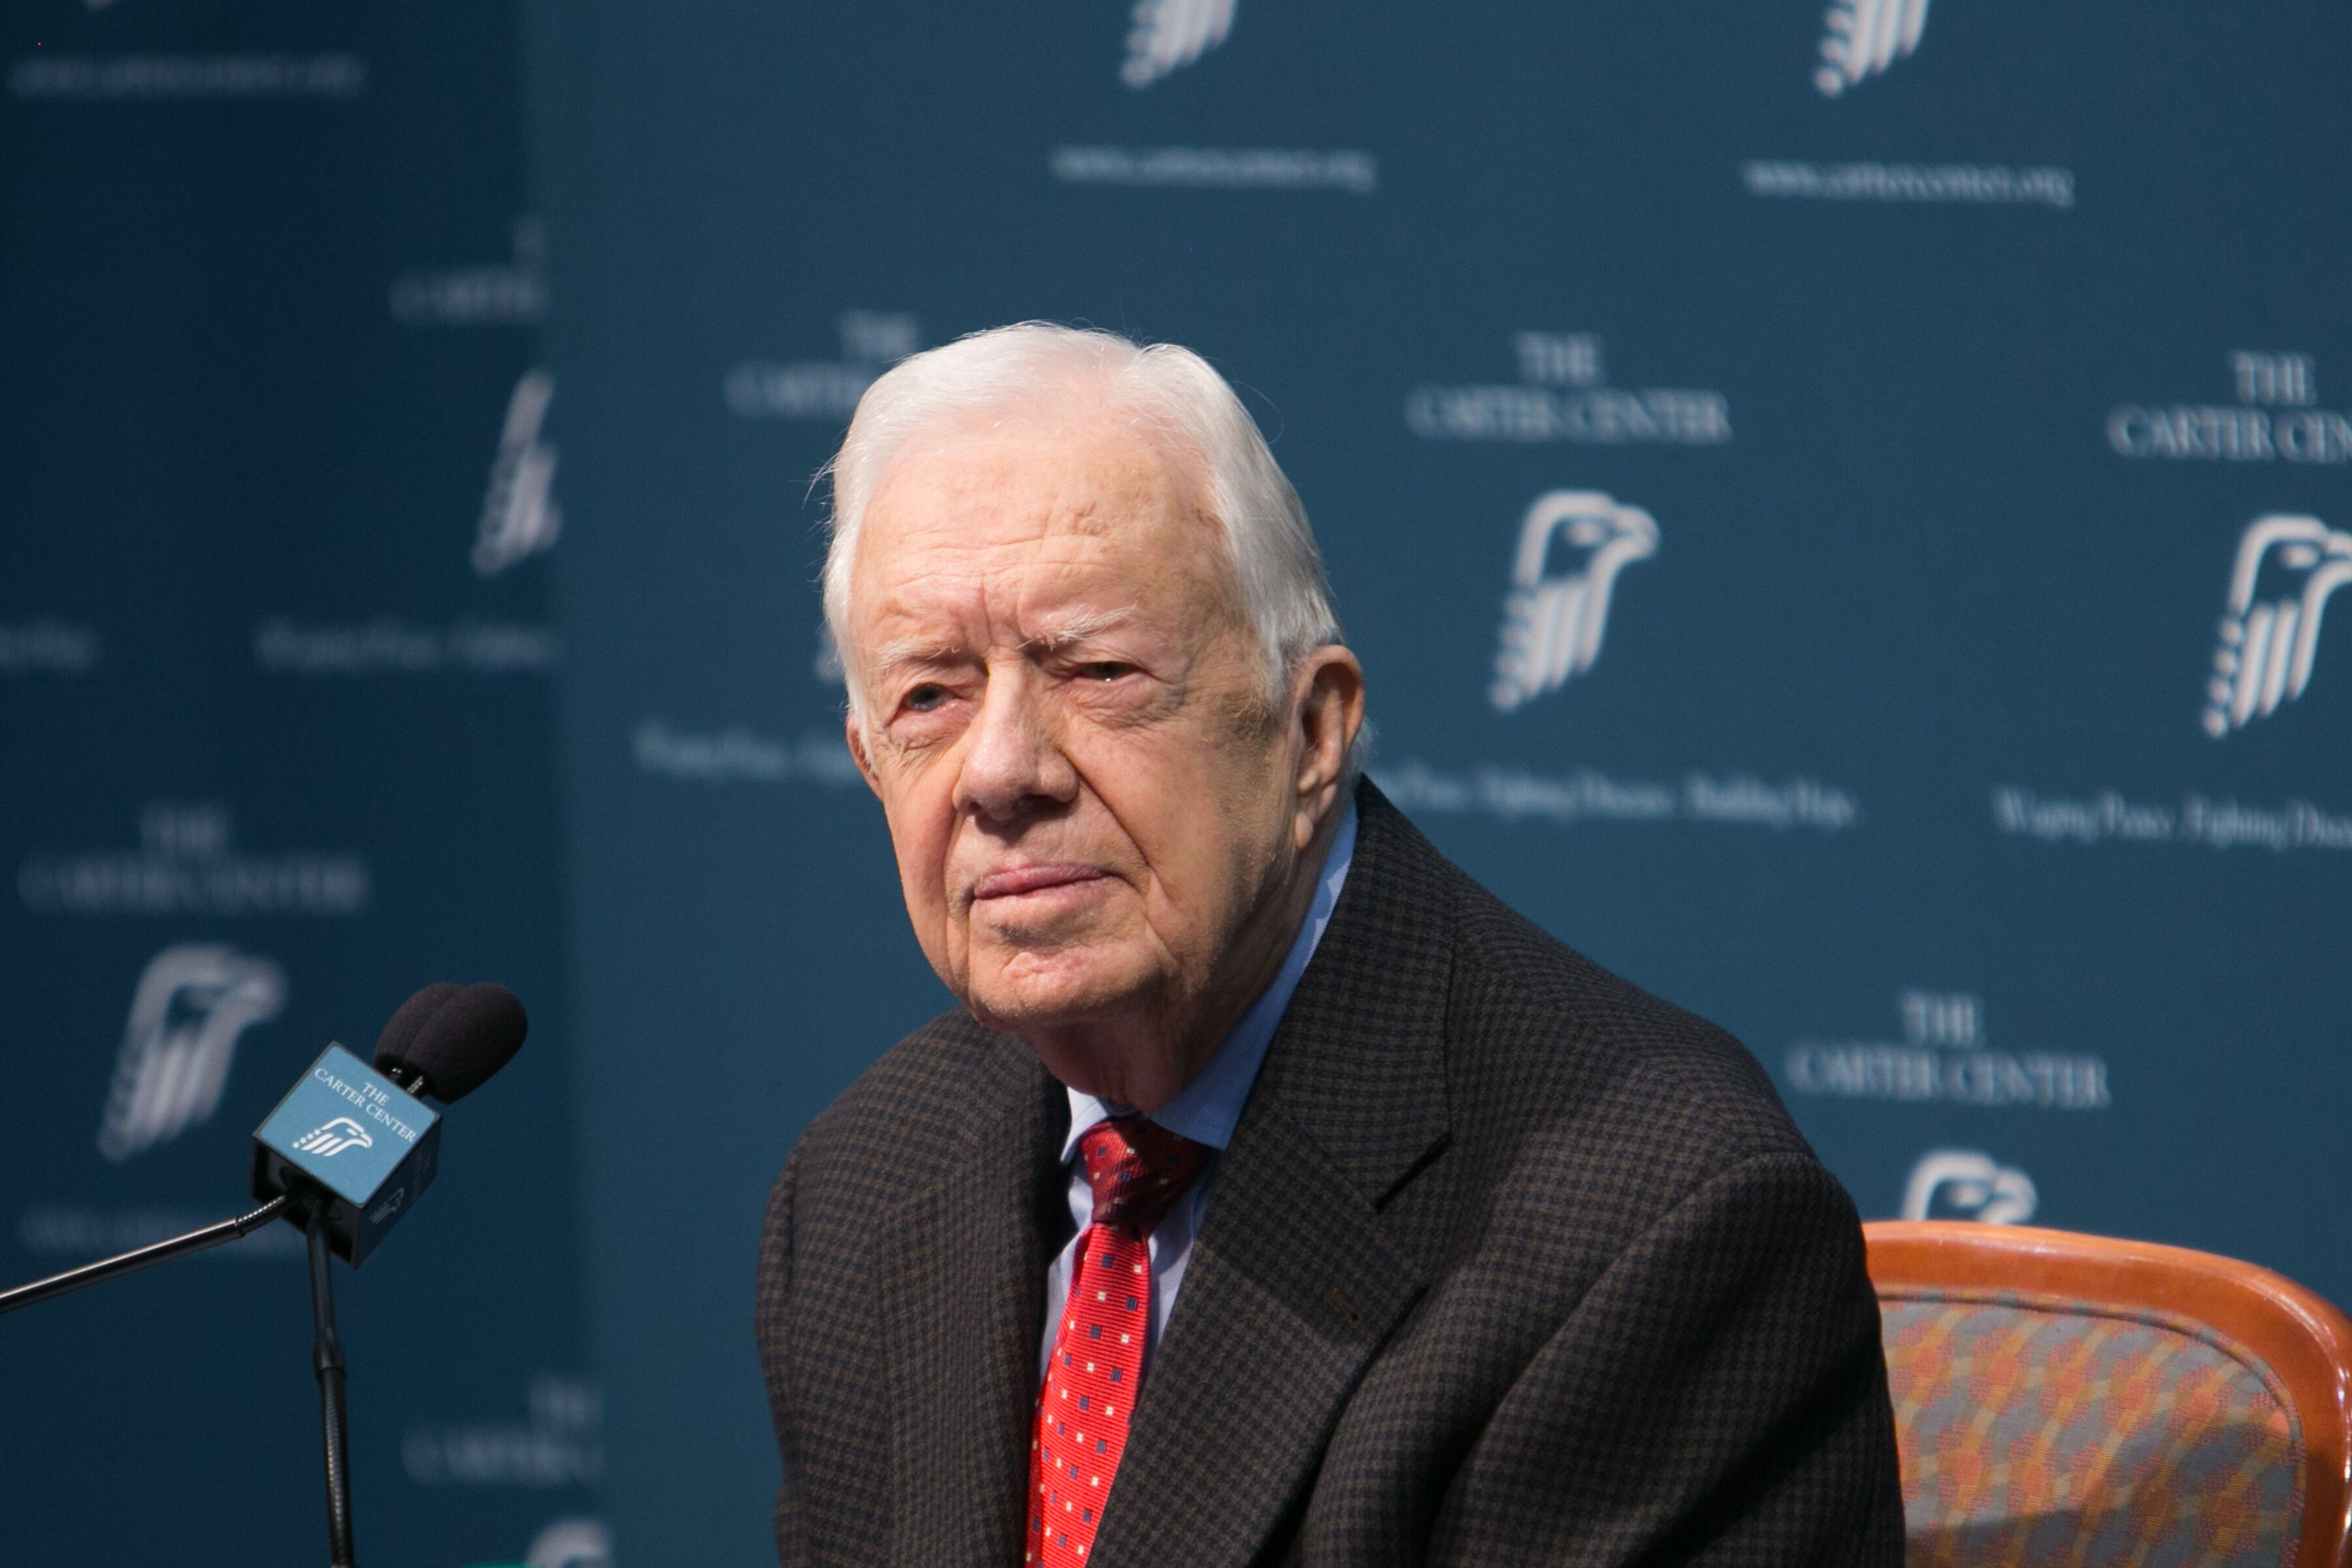 Jimmy Carter at a press conference at the Carter Center on August 20, 2015, in Atlanta, Georgia | Photo: Jessica McGowan/Getty Images